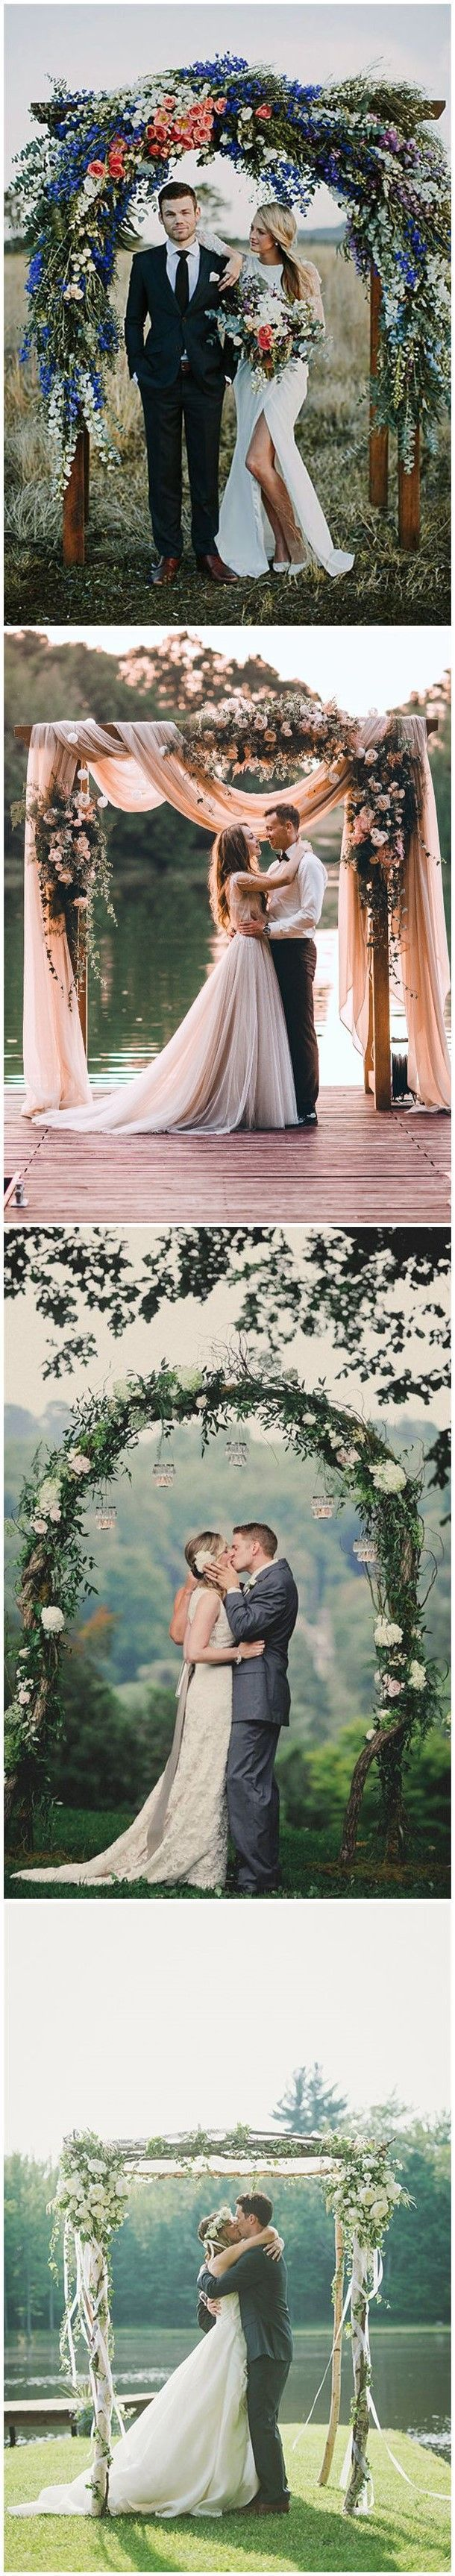 The 25 best rustic wedding arches ideas on pinterest for Arches decoration ideas